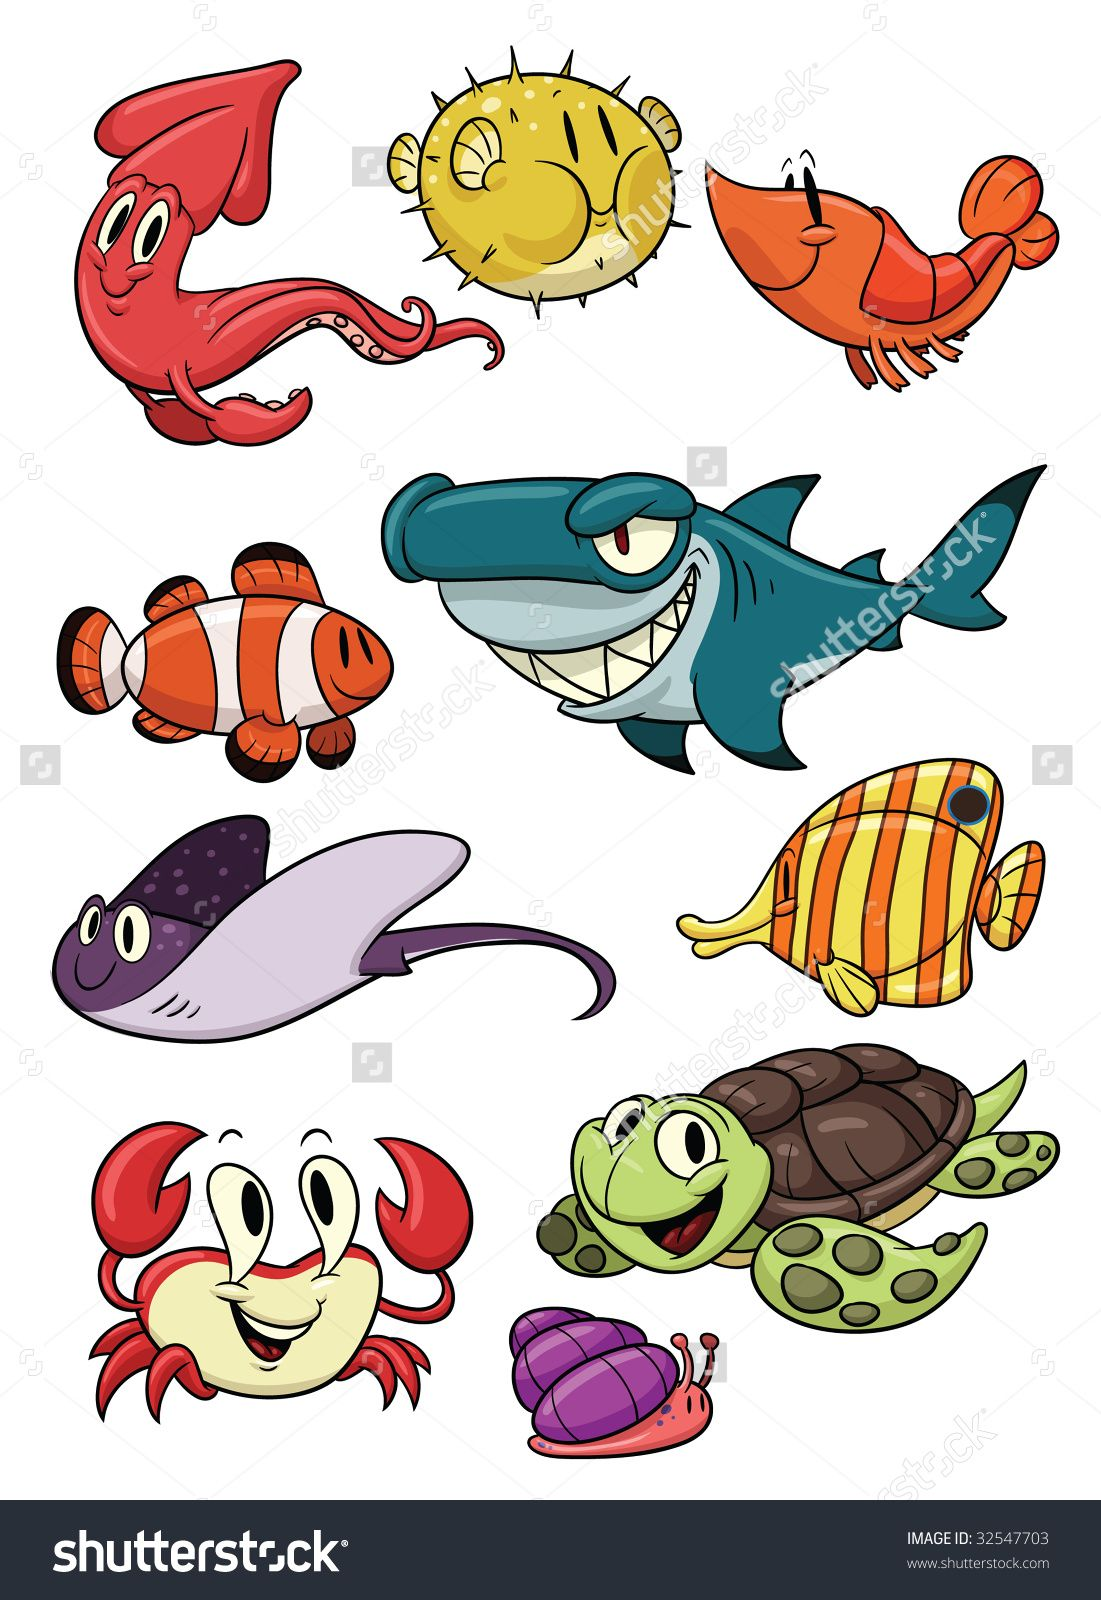 Cute cartoon sea creatures all in different layers for easy editing